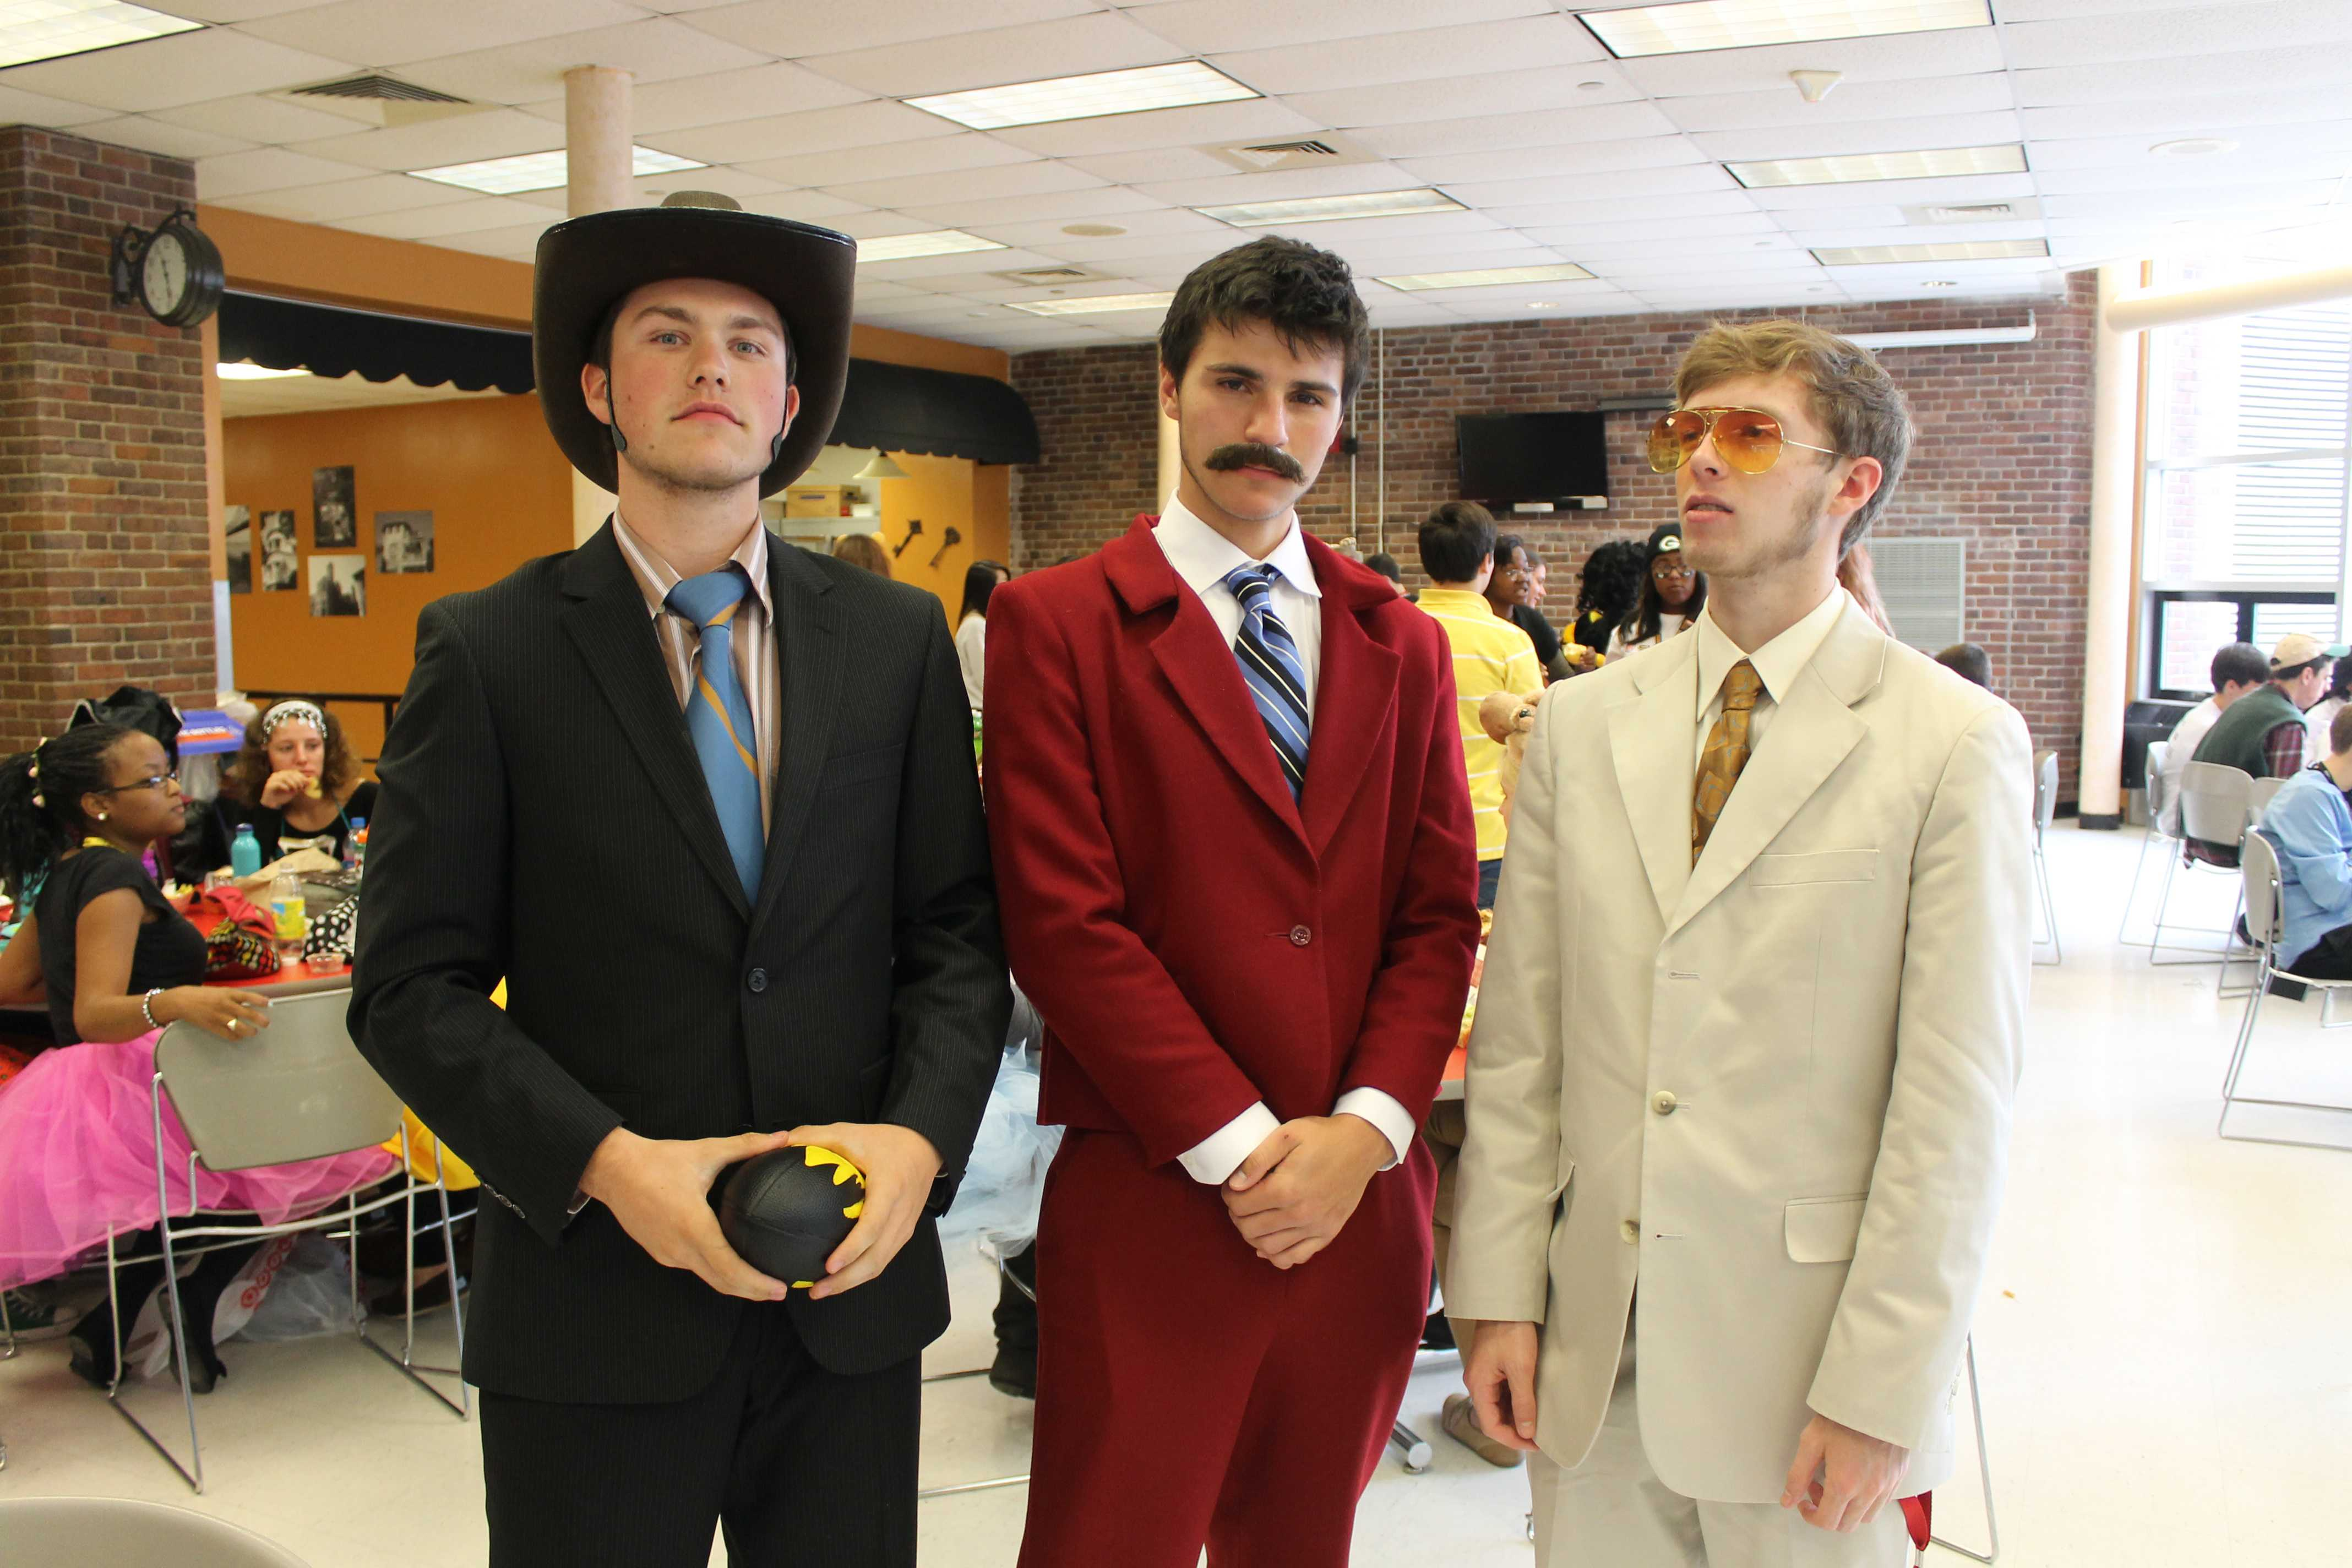 Manual suits up for Costume Day